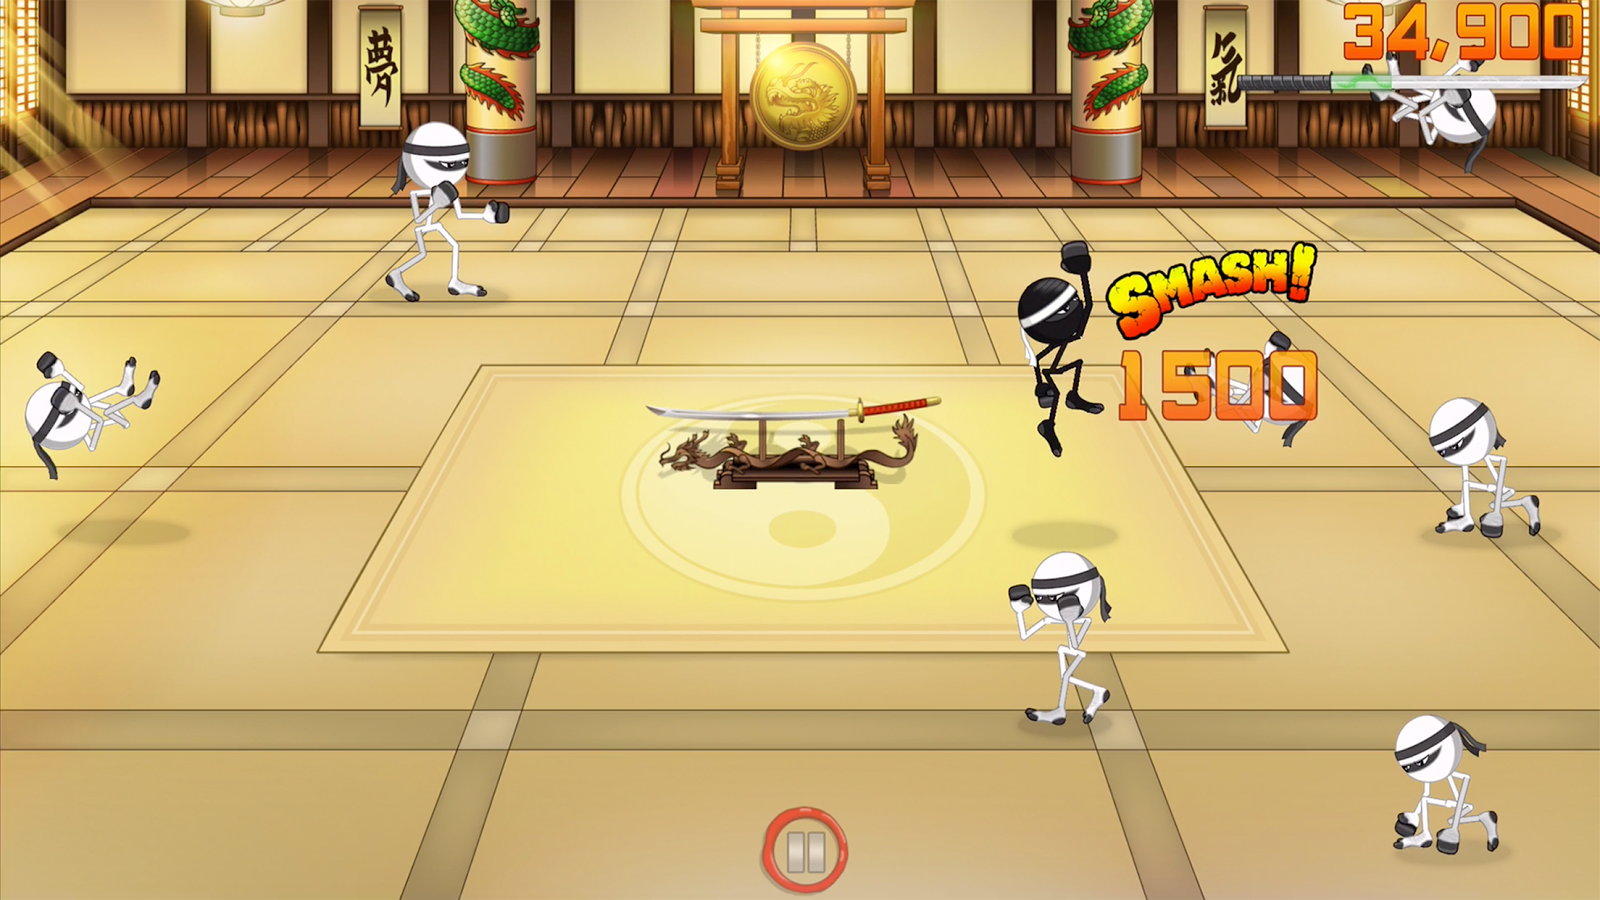 Stickninja Smash Screenshot 4